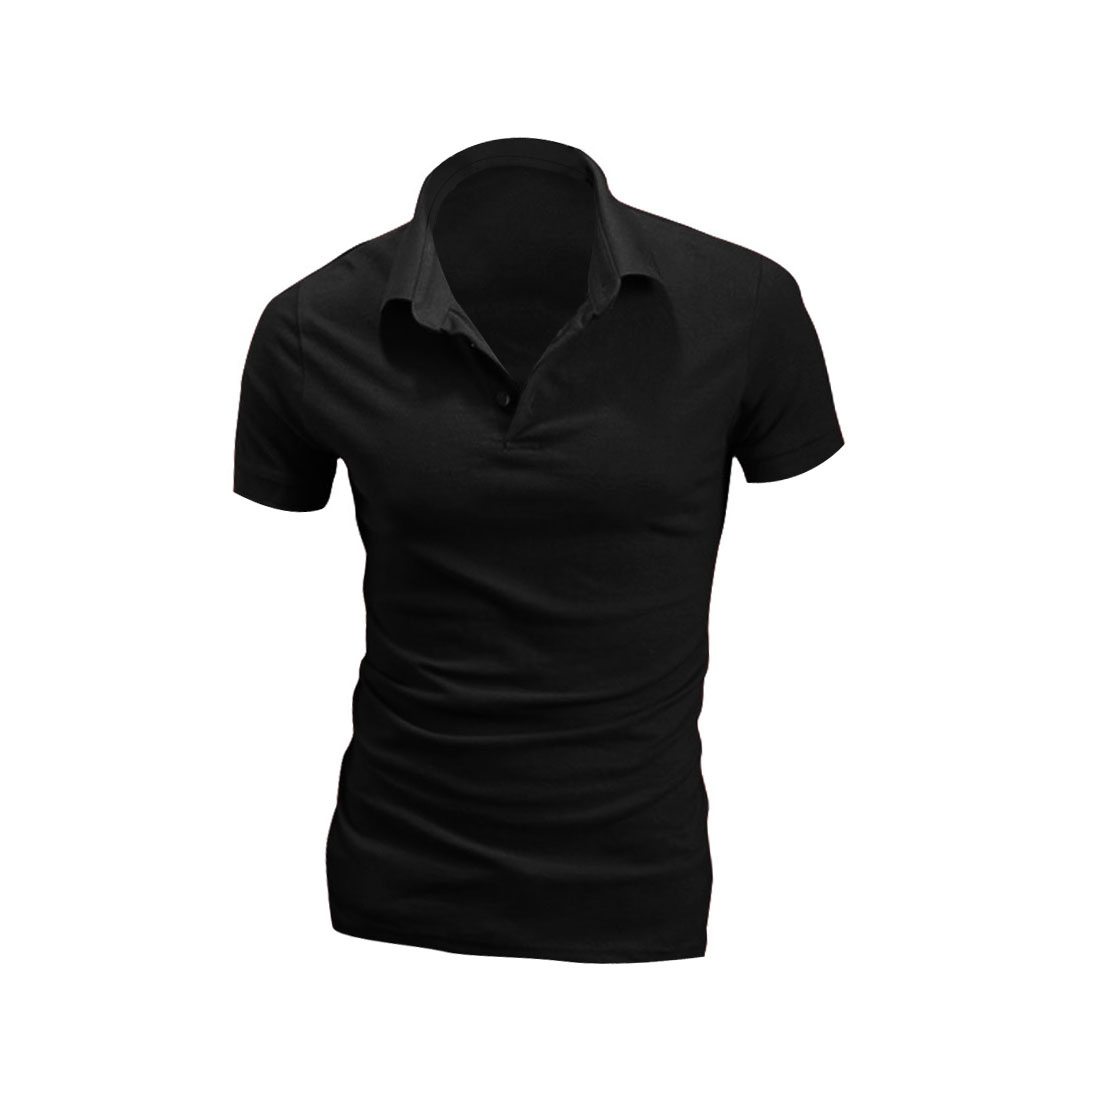 Men Solid Color Short-sleeved Buttons Up Front Shirt Black M